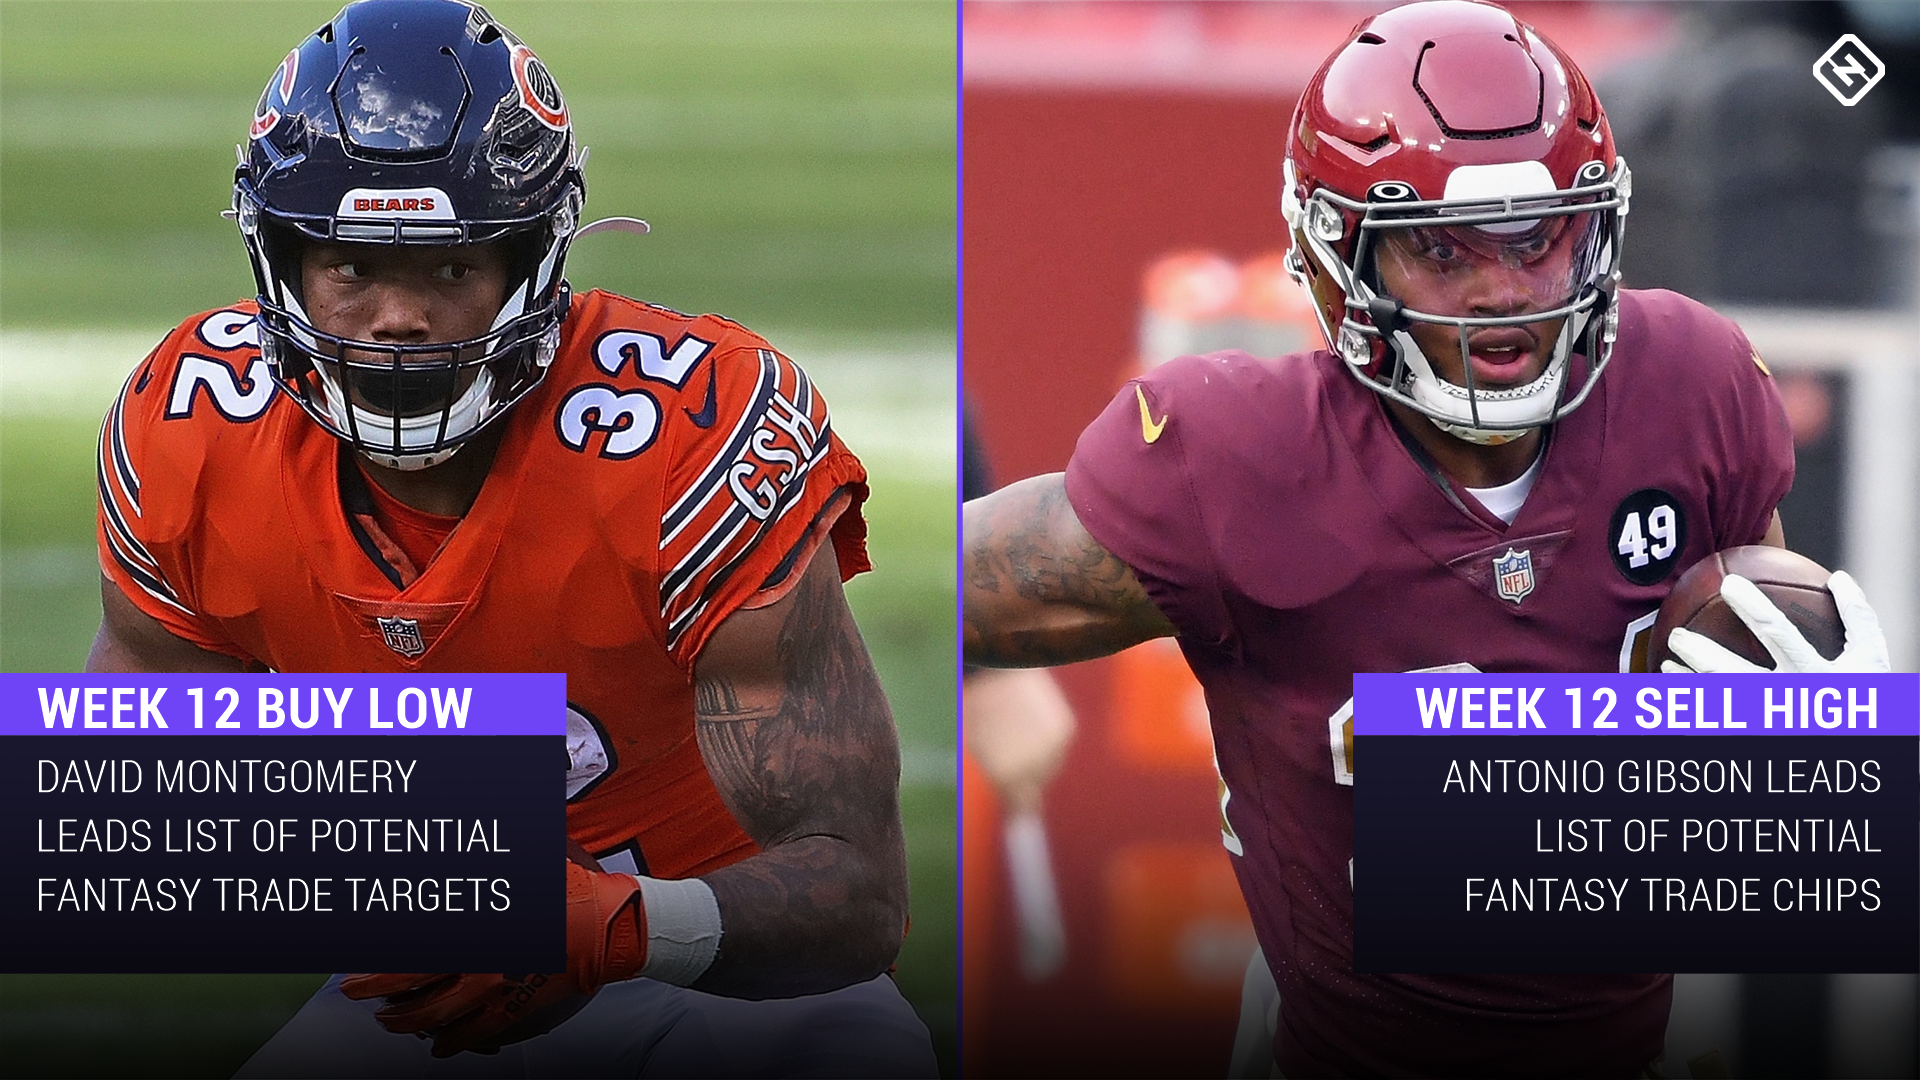 Fantasy Football Buy-Low, Sell-High Stock Watch: David Montgomery, Antonio Gibson among trade candidates heading into Week 12